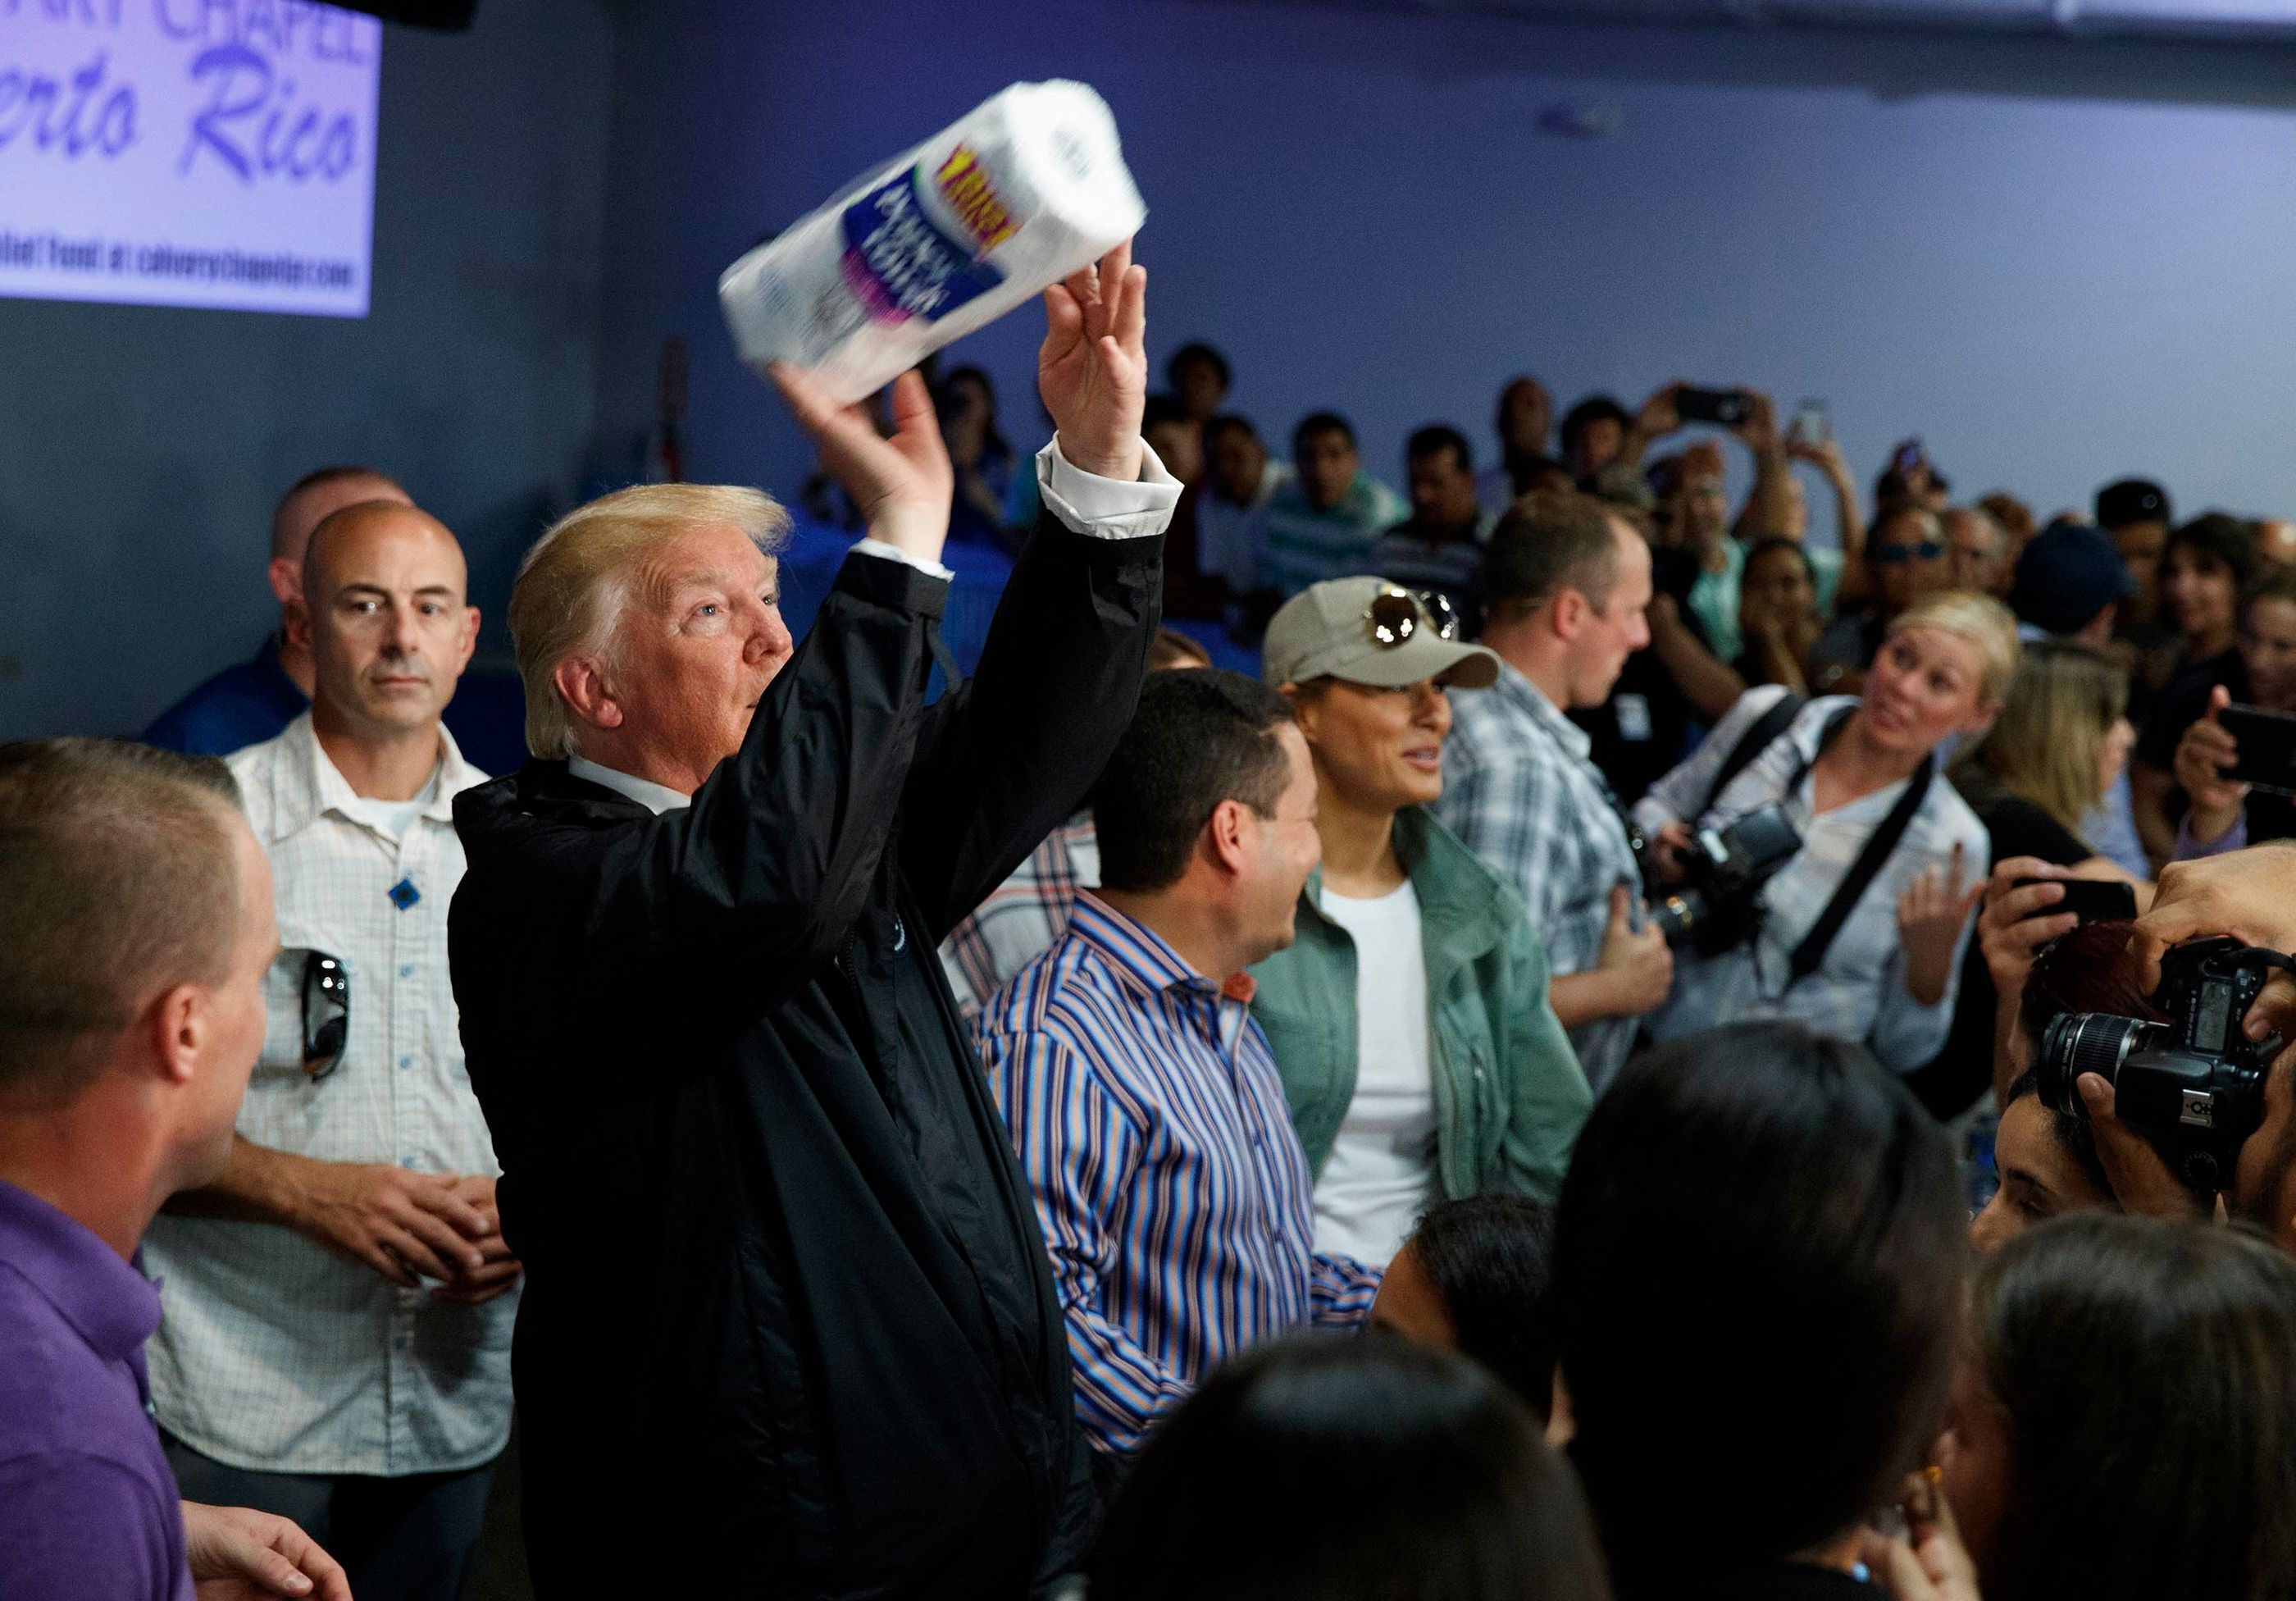 In his first visit to the island after Hurricane Maria, Trump tossed paper towels at survivors, who were in dire need of basi